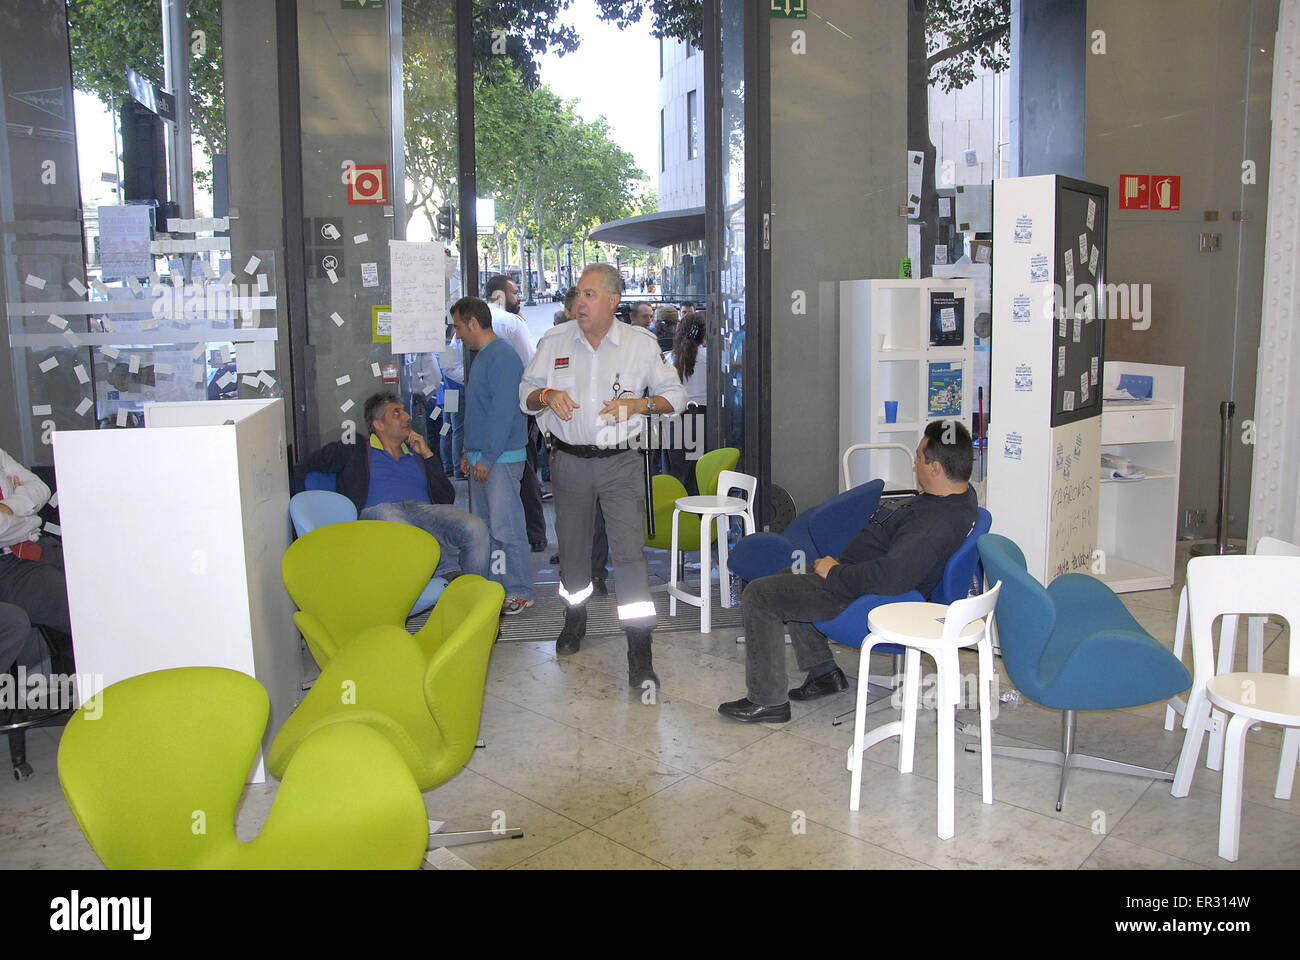 Barcelona, Spain. 26th May, 2015. 50 Movistar telefonica company employees continue protesting for their rights. - Stock Image